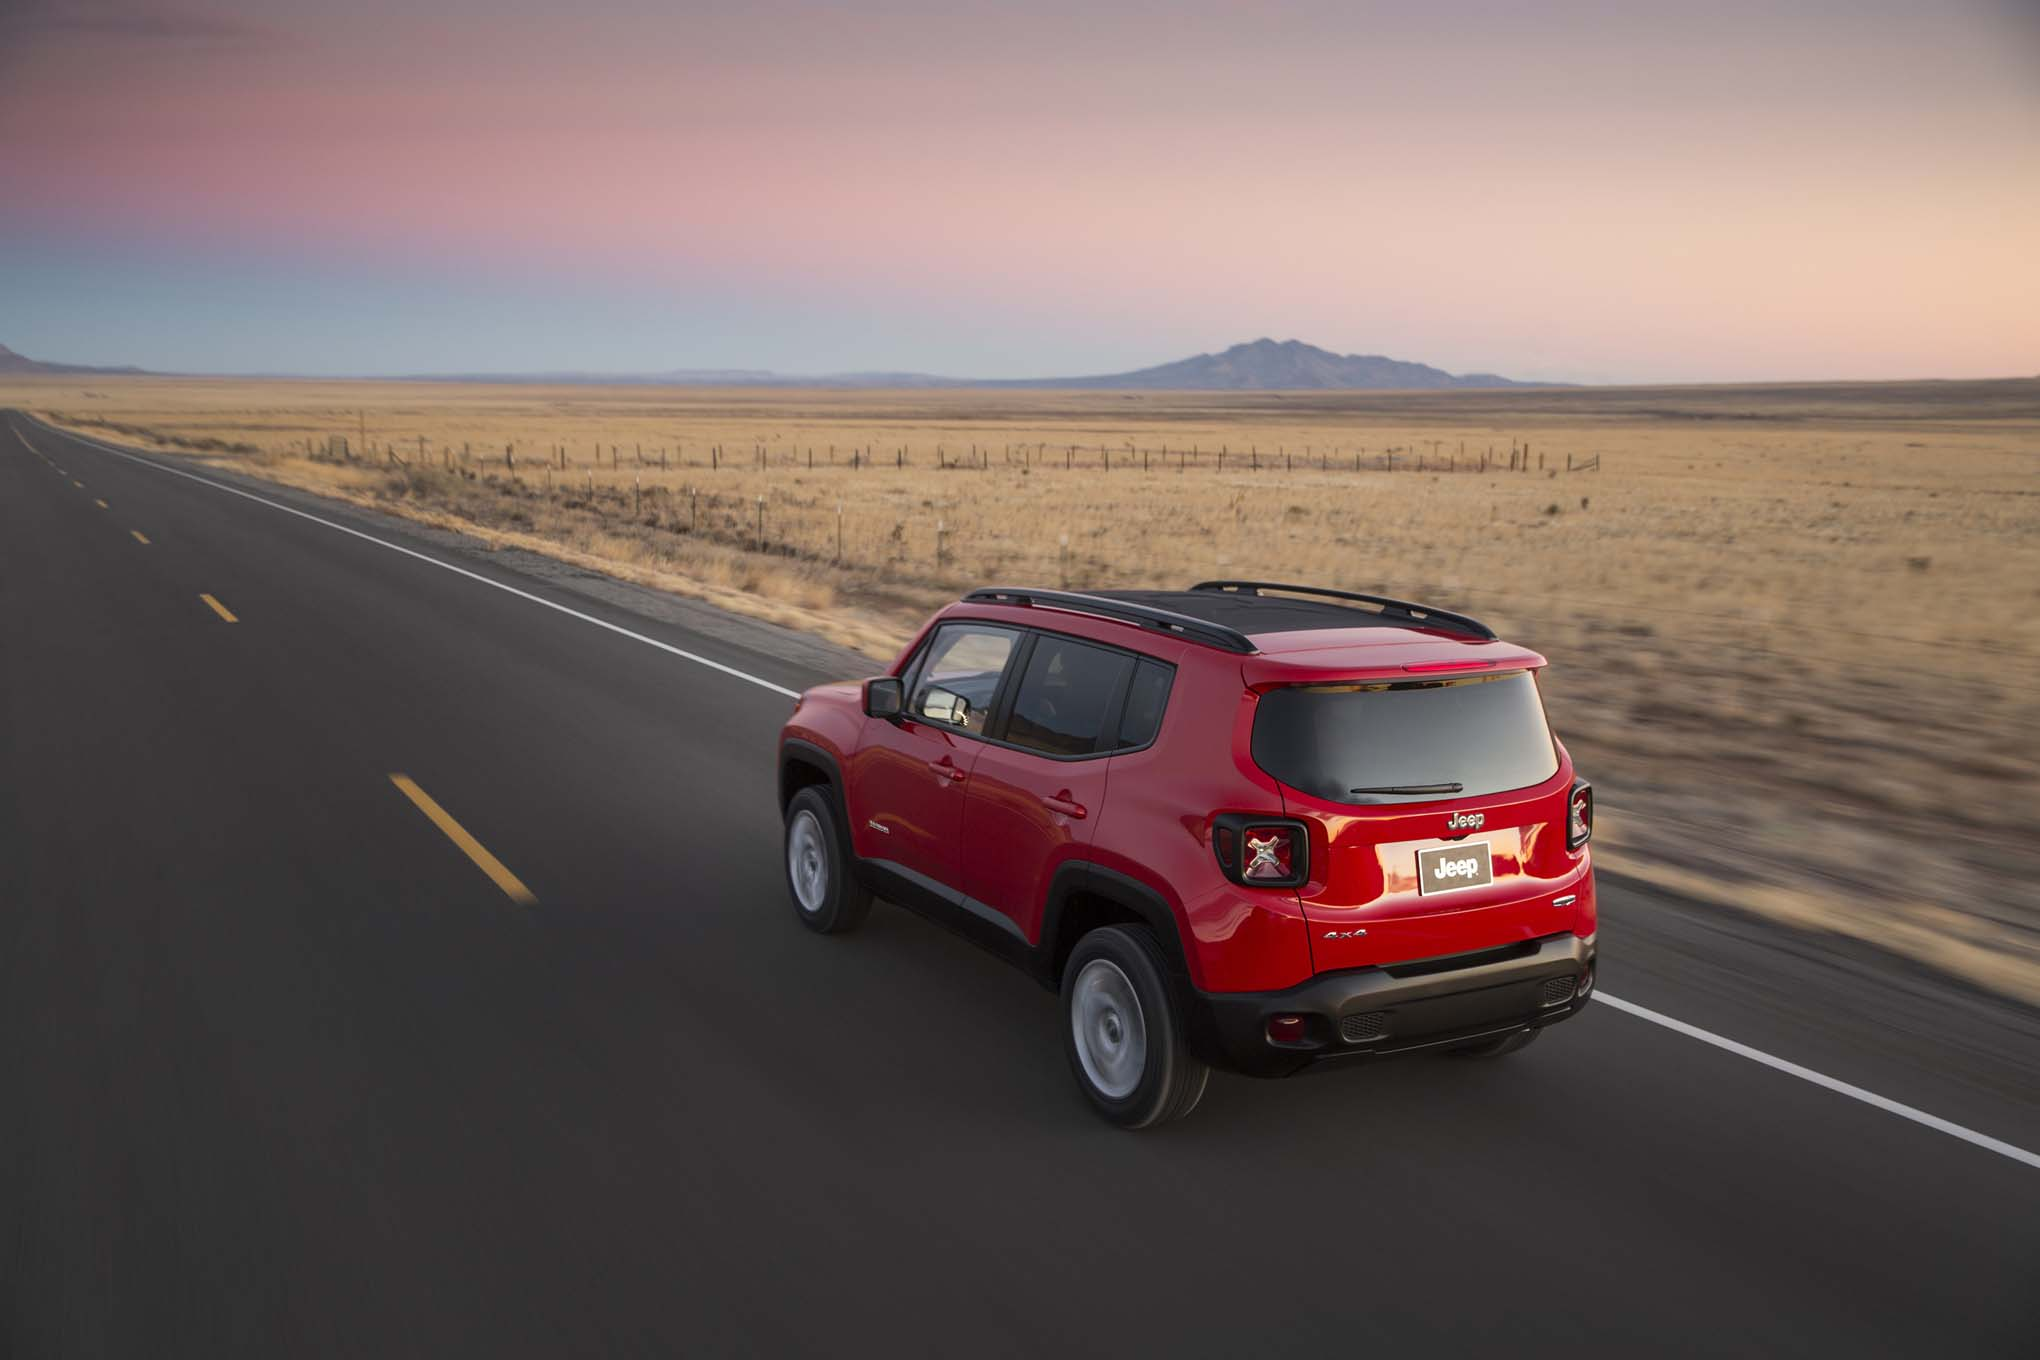 2015 Jeep Renegade Latitude rear three quarters in motion 02